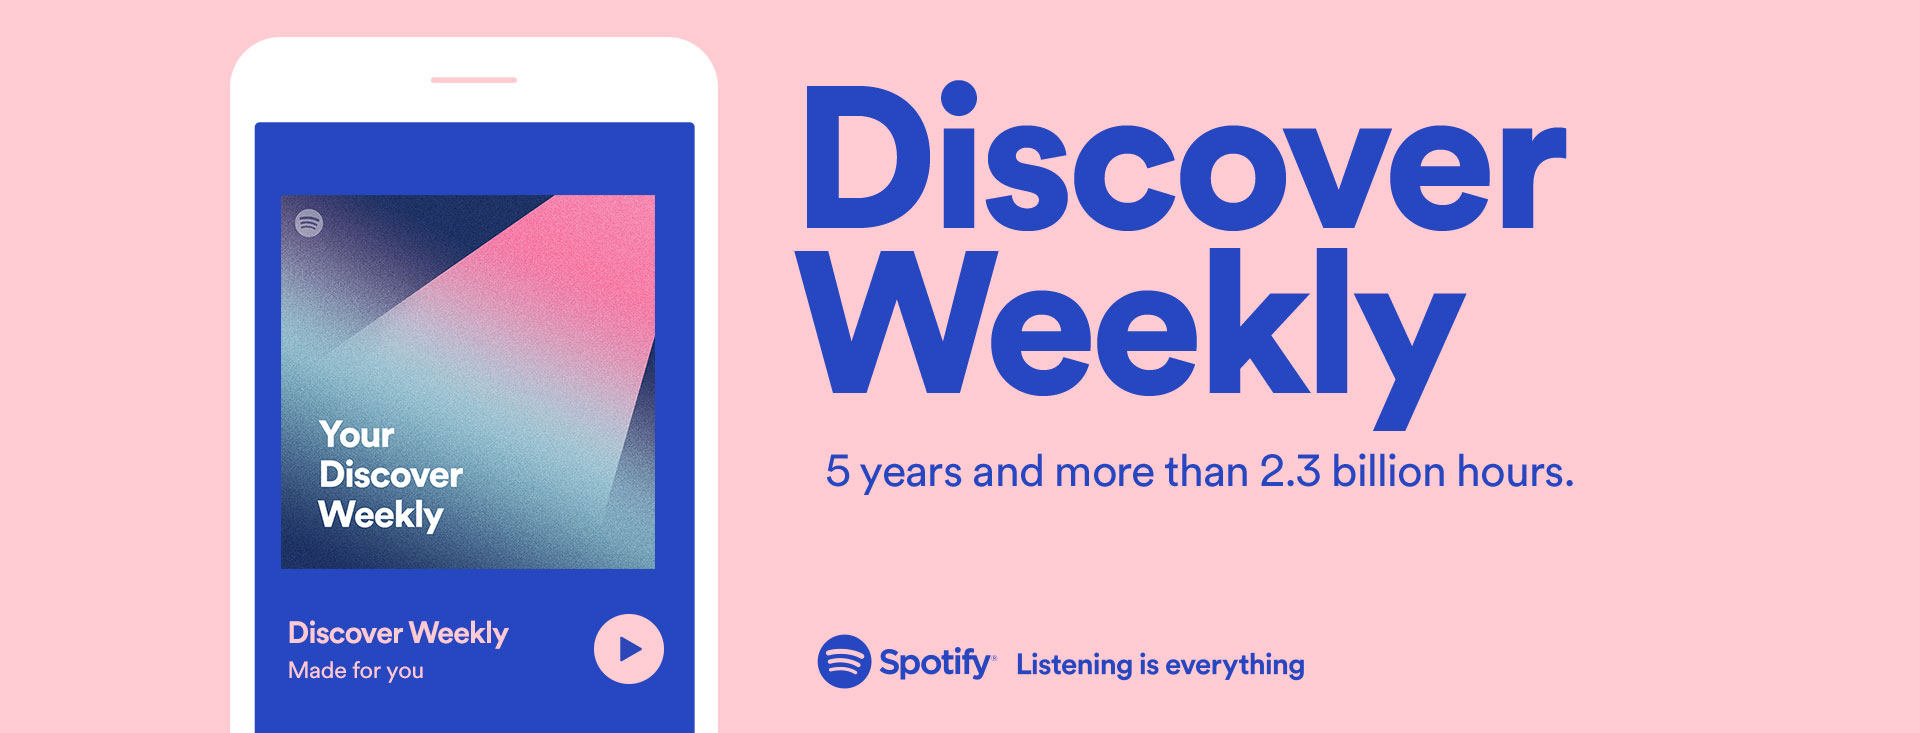 How to get on discover weekly